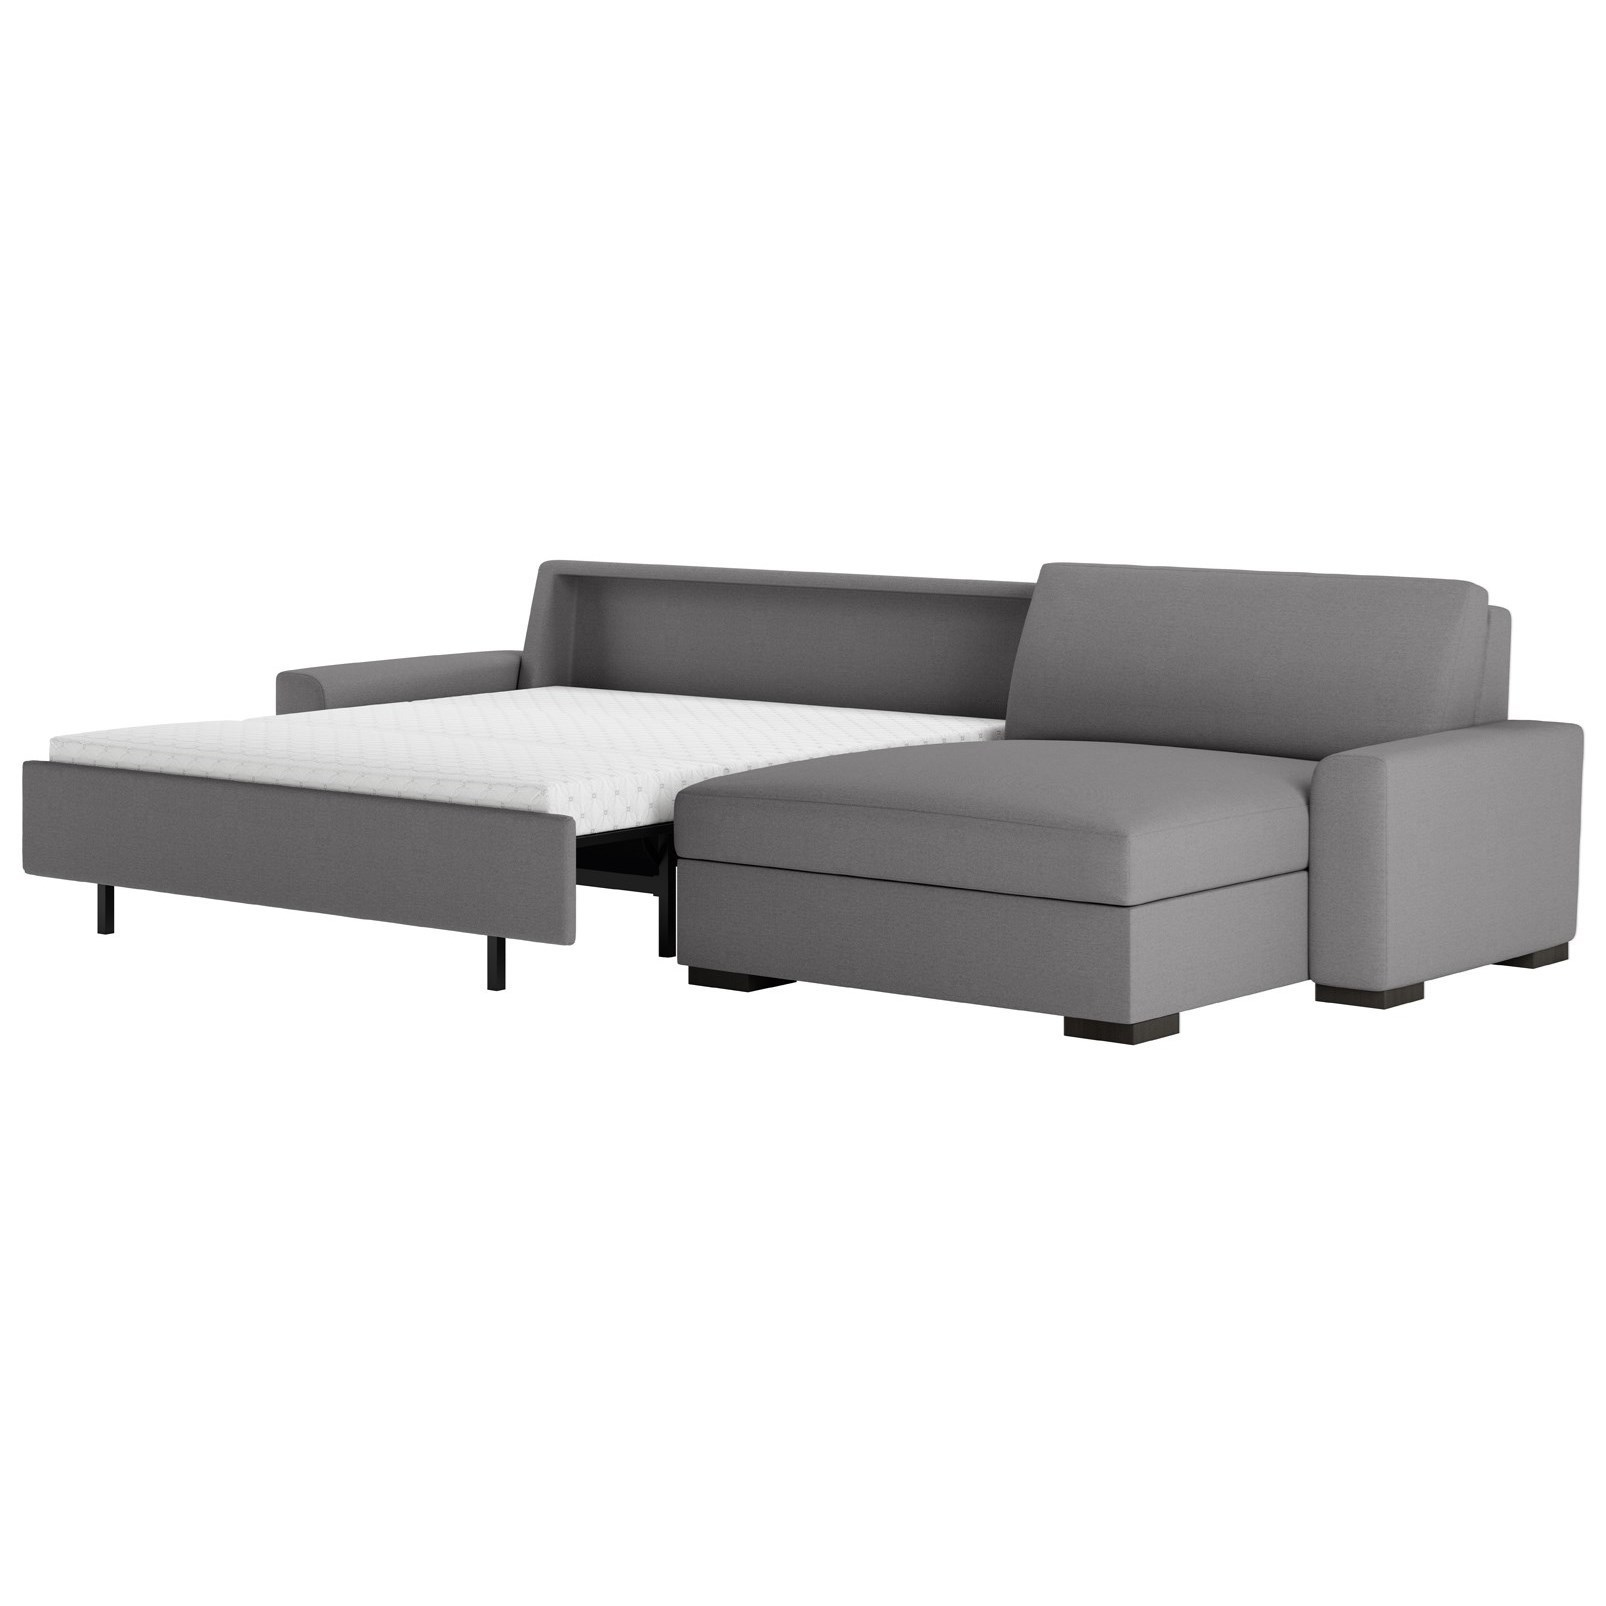 American Leather Olson Two Piece Sectional Sofa With Queen